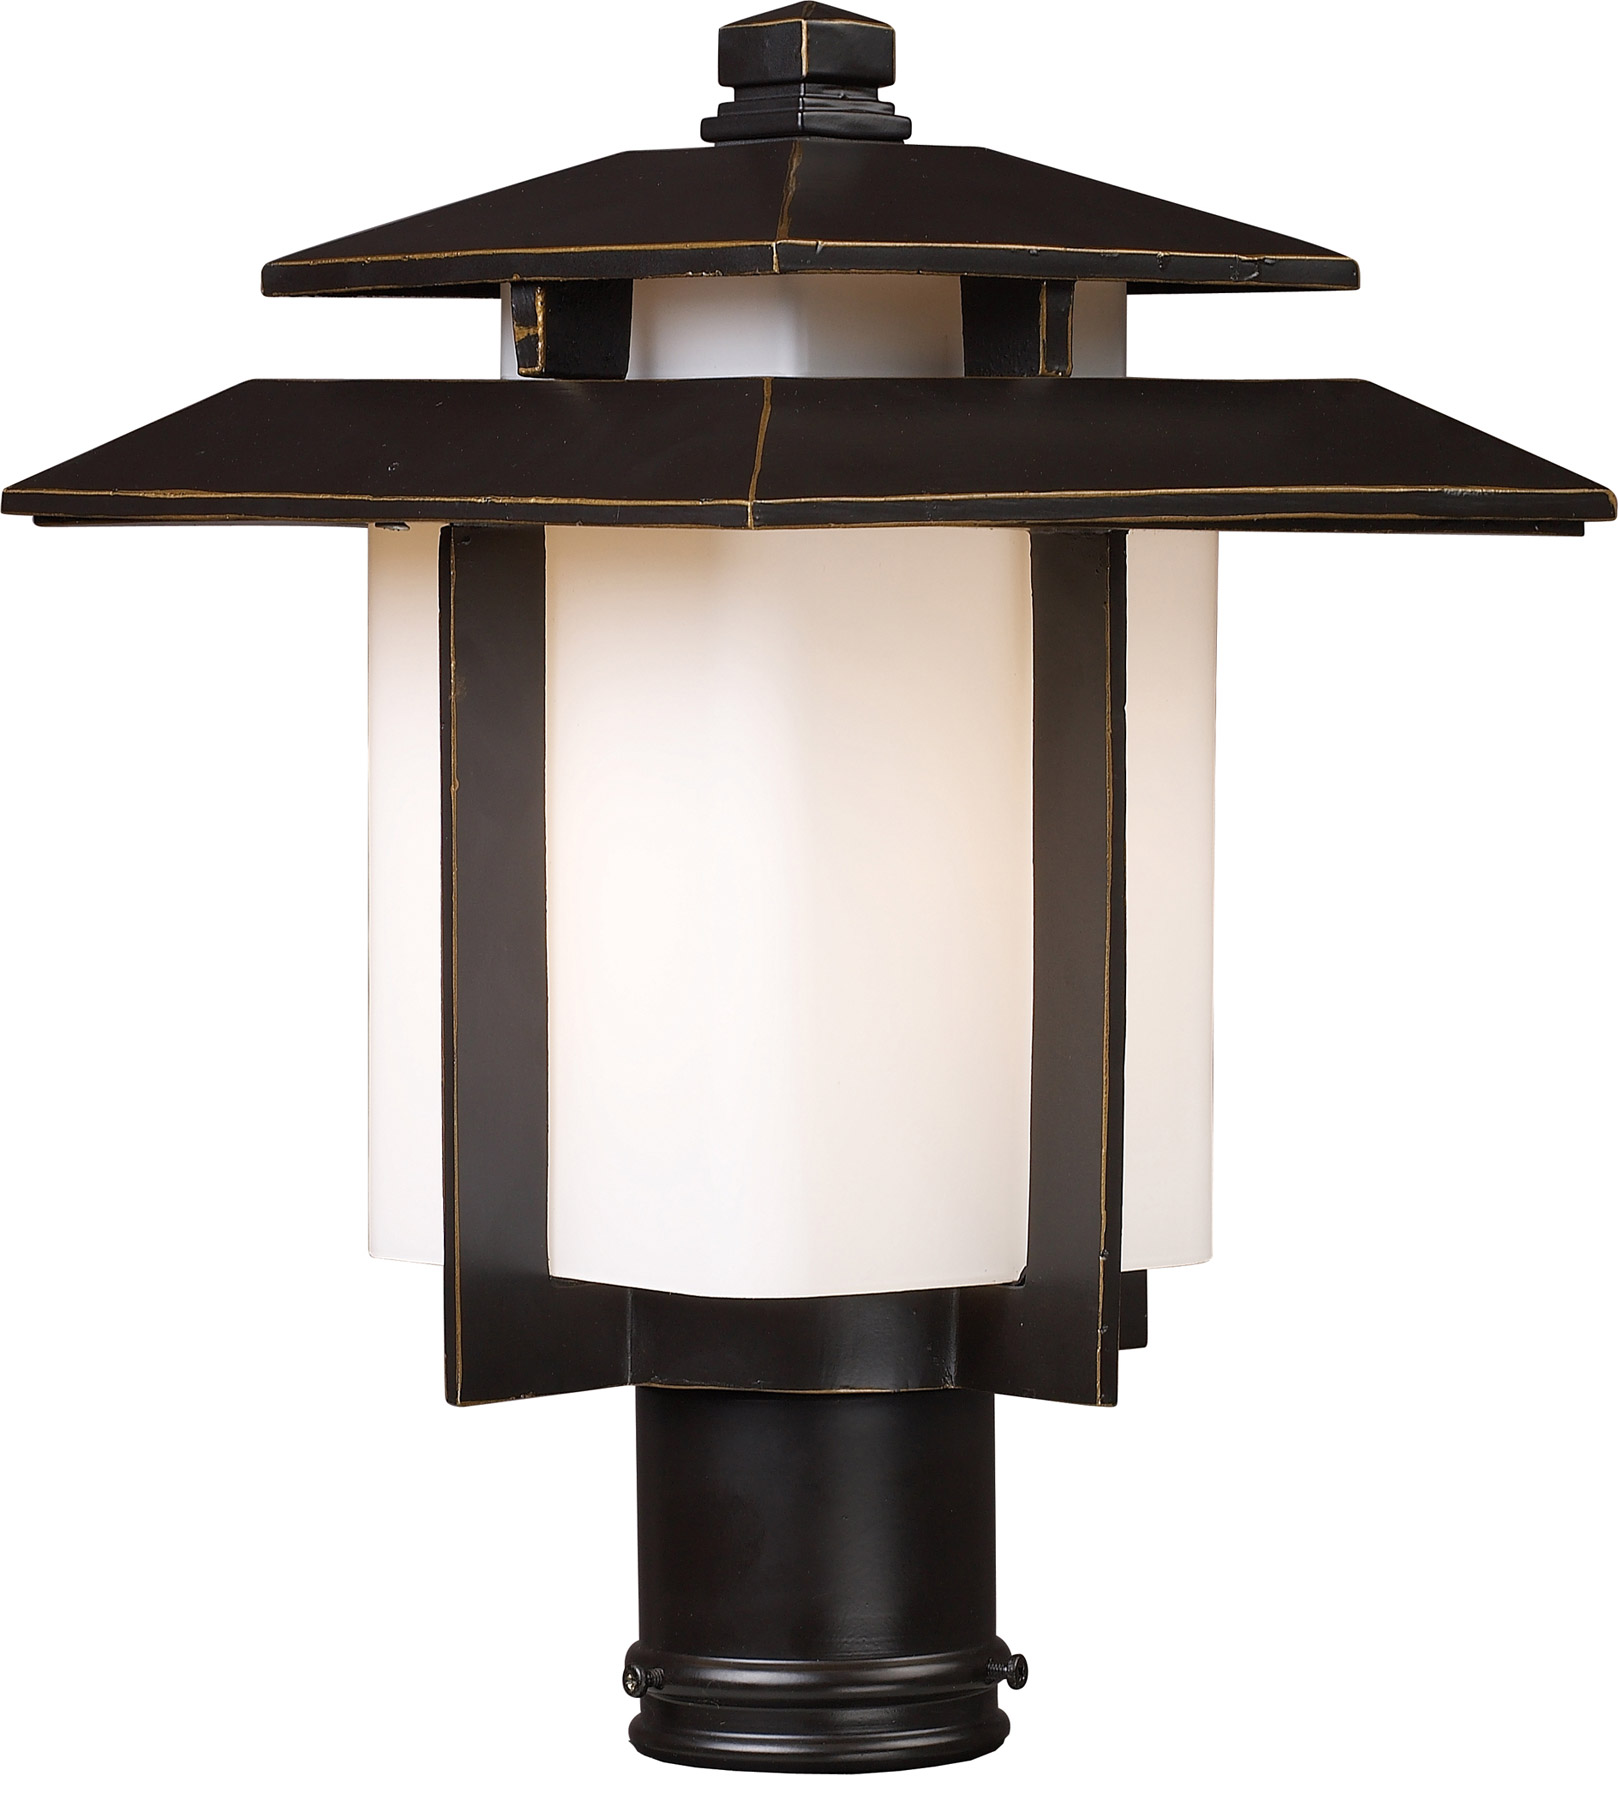 Column mount outdoor lights reasons to install warisan for Outdoor landscape lighting fixtures